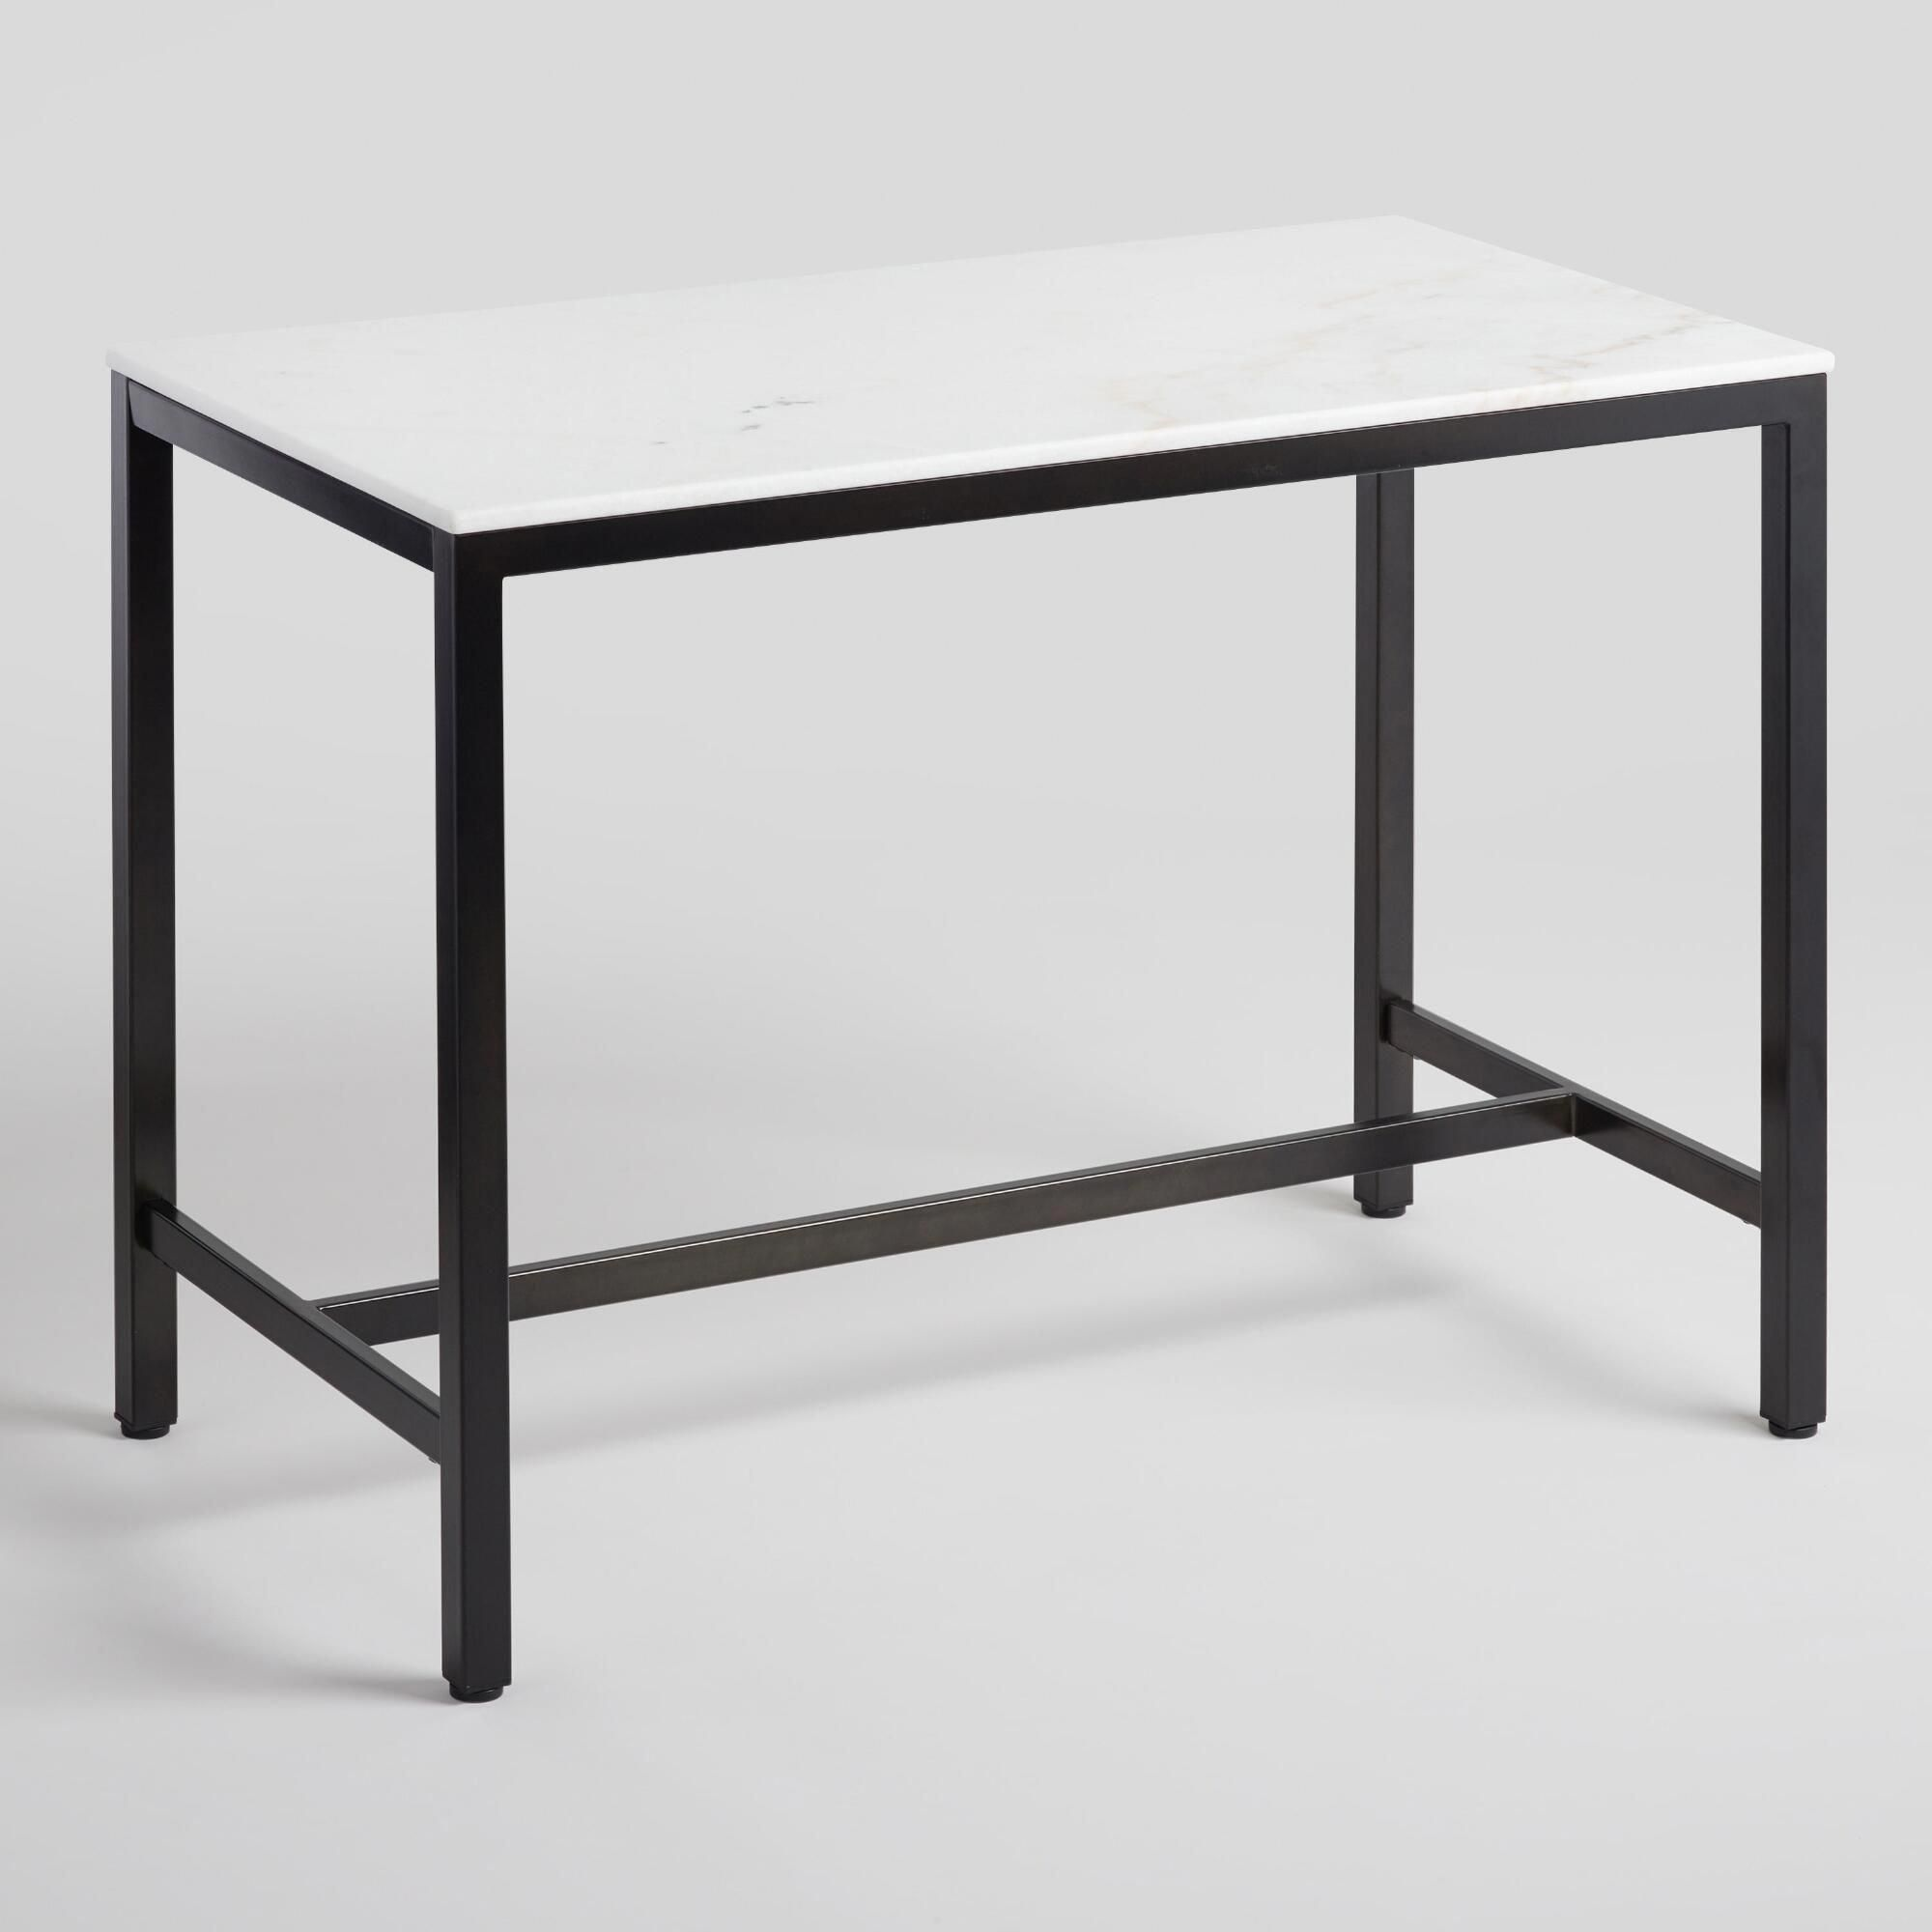 35+ Sievers counter height dining table Best Choice